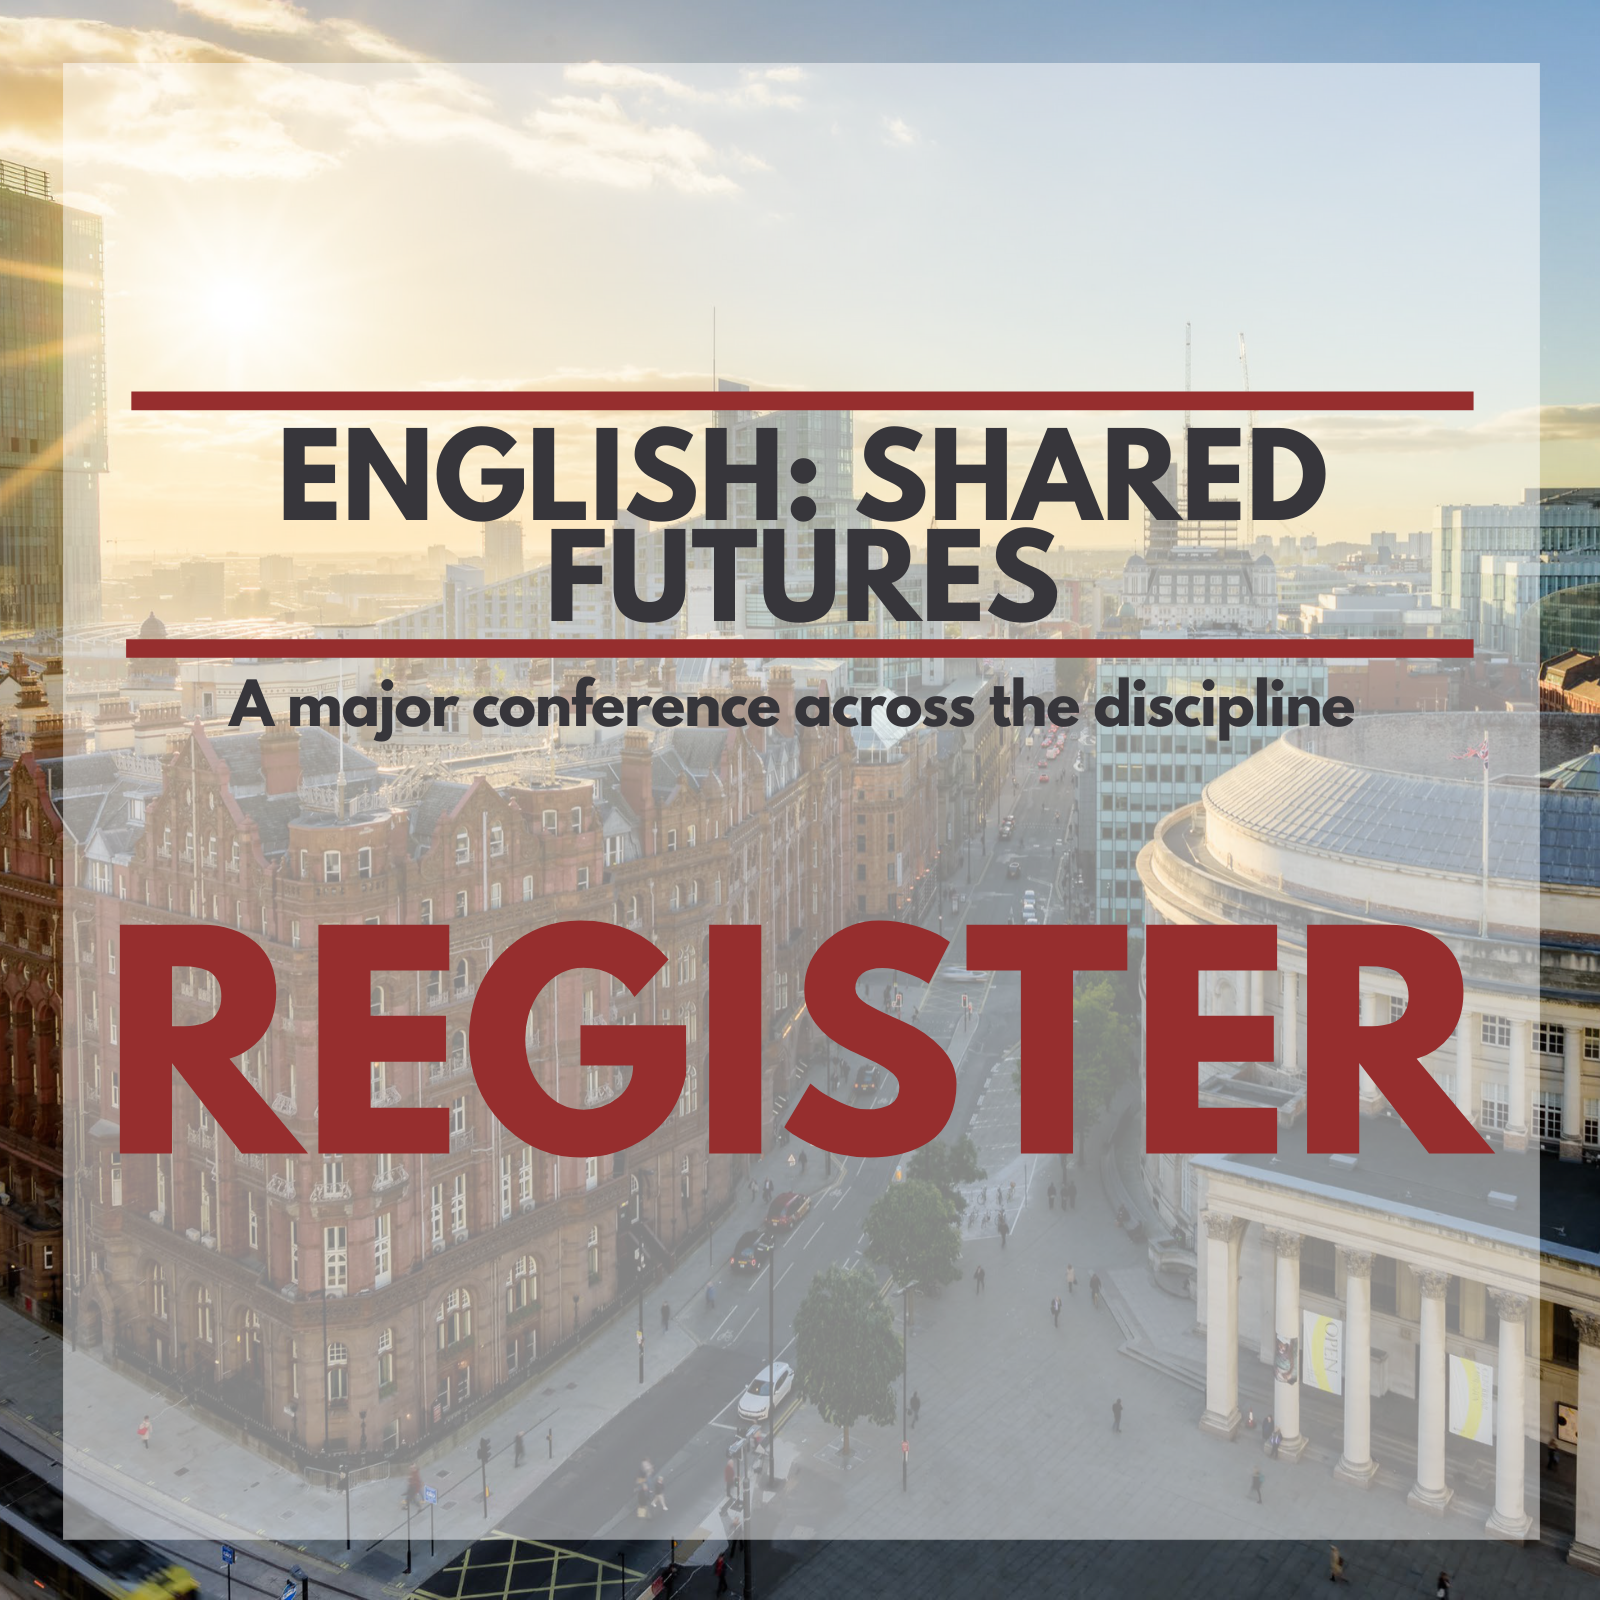 Image of a Manchester skyline for conference registration.